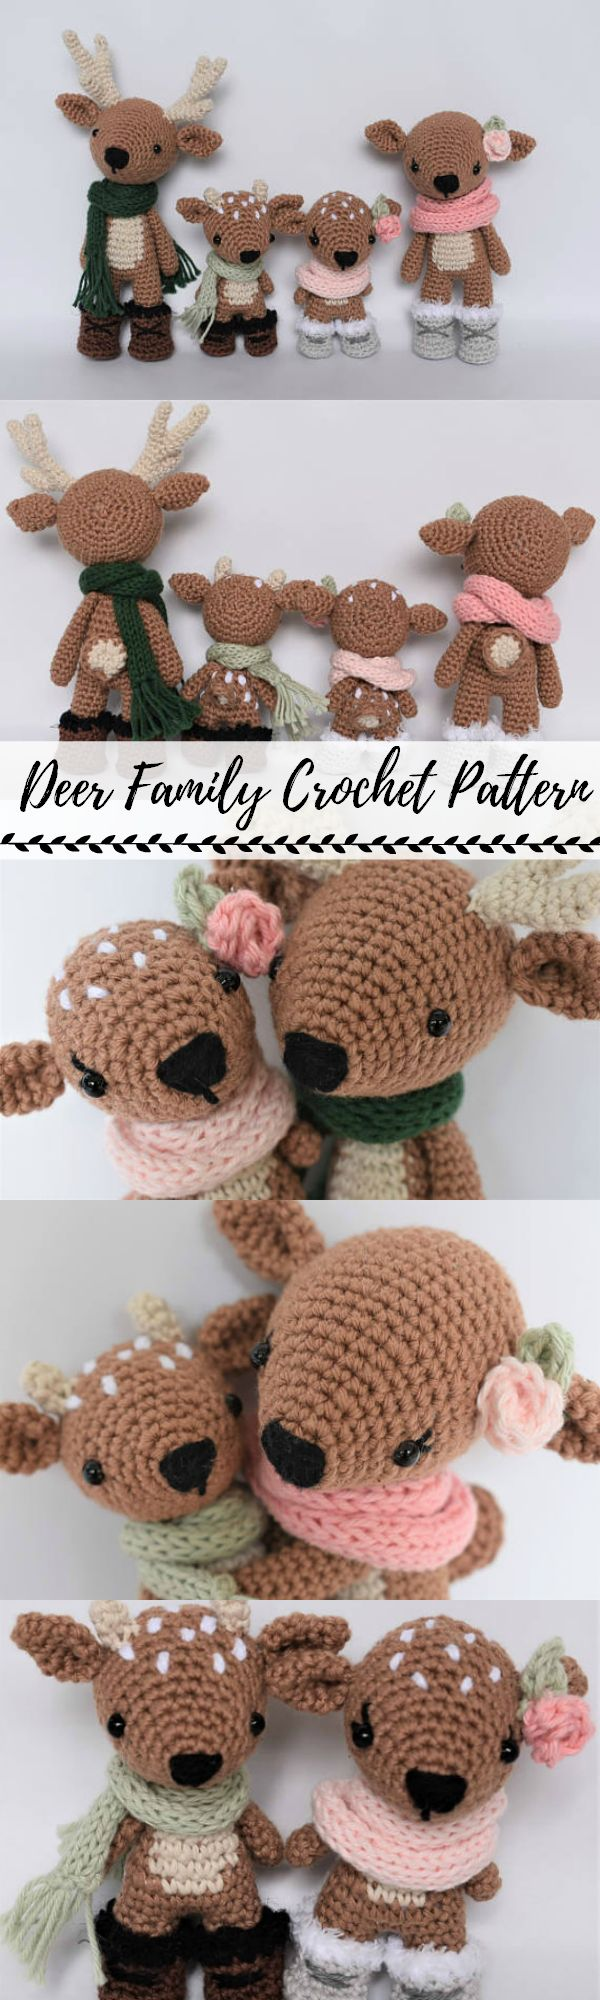 Deer Family Crochet Pattern / Photo Tutorial #etsy #crochet #pattern #pdf #ad